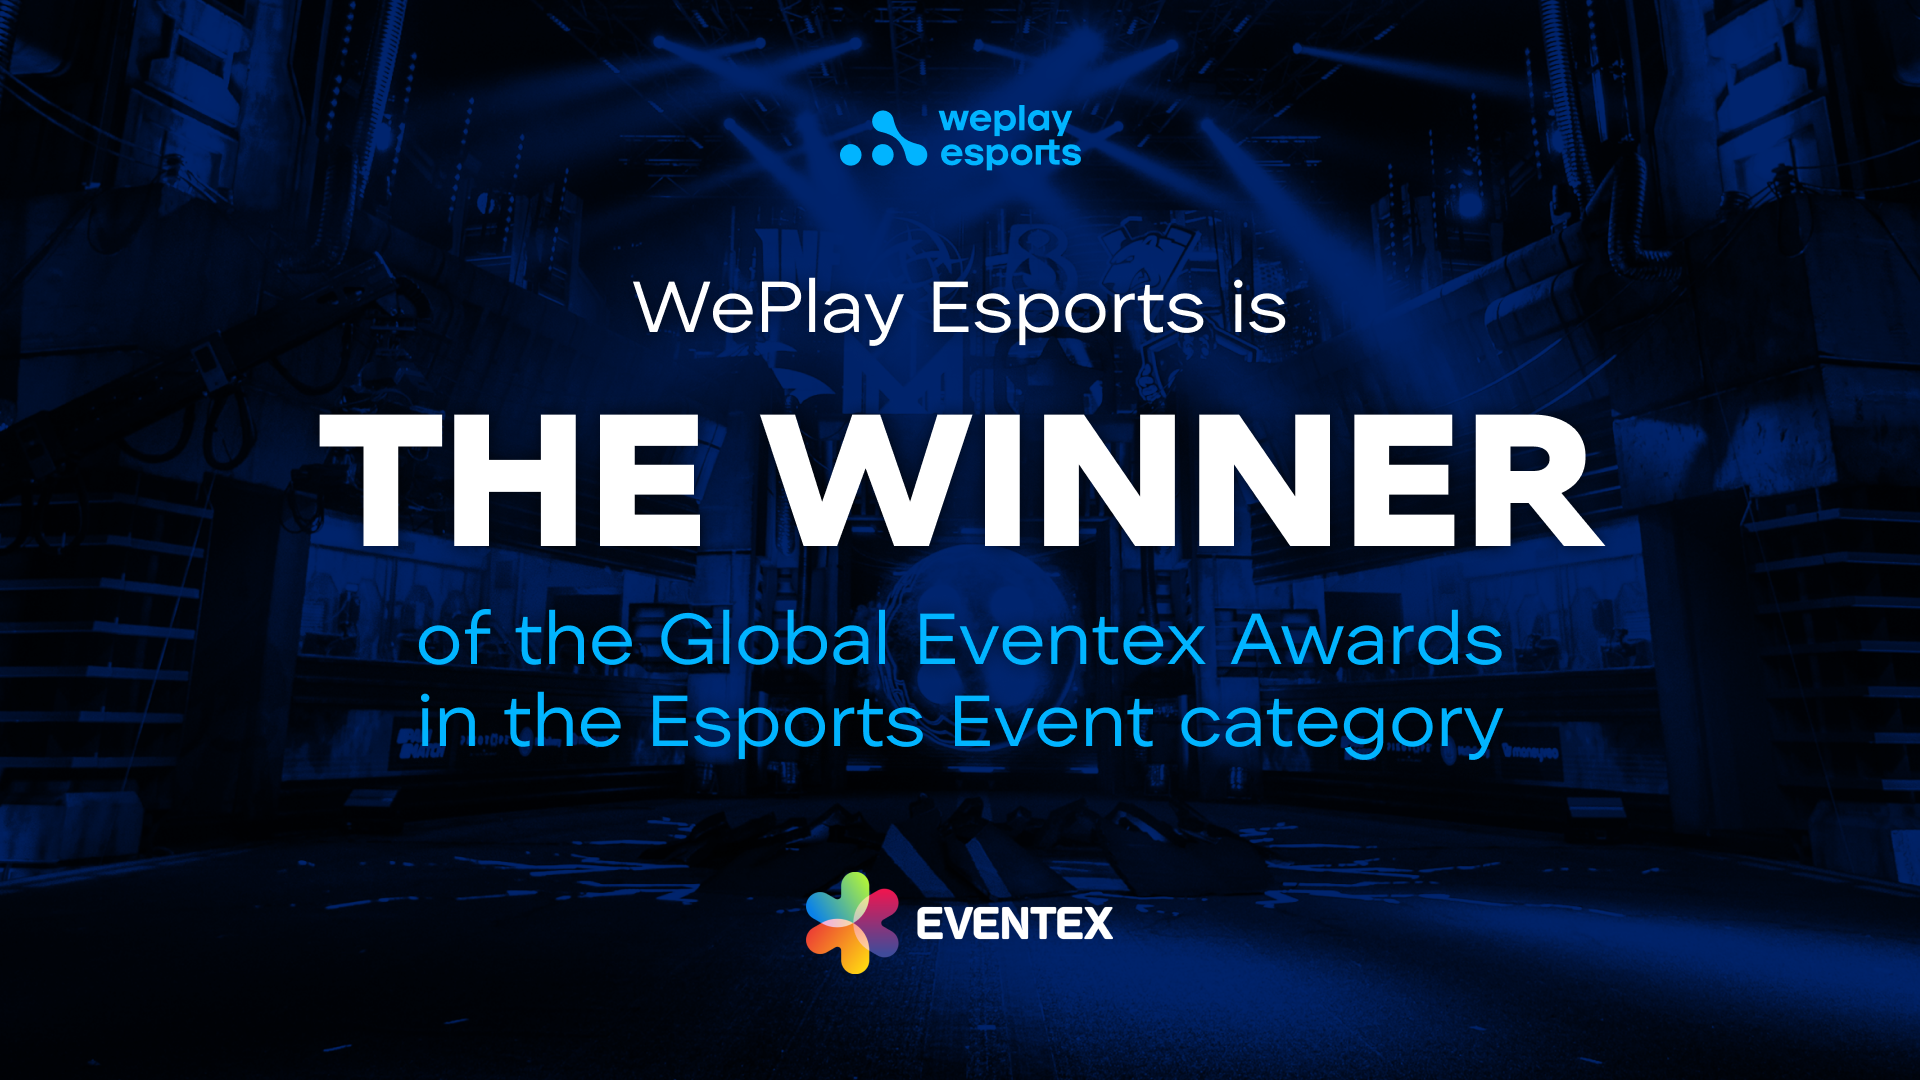 WePlay Esports is the winner of the 11th Global Eventex Awards. Image: WePlay Esports